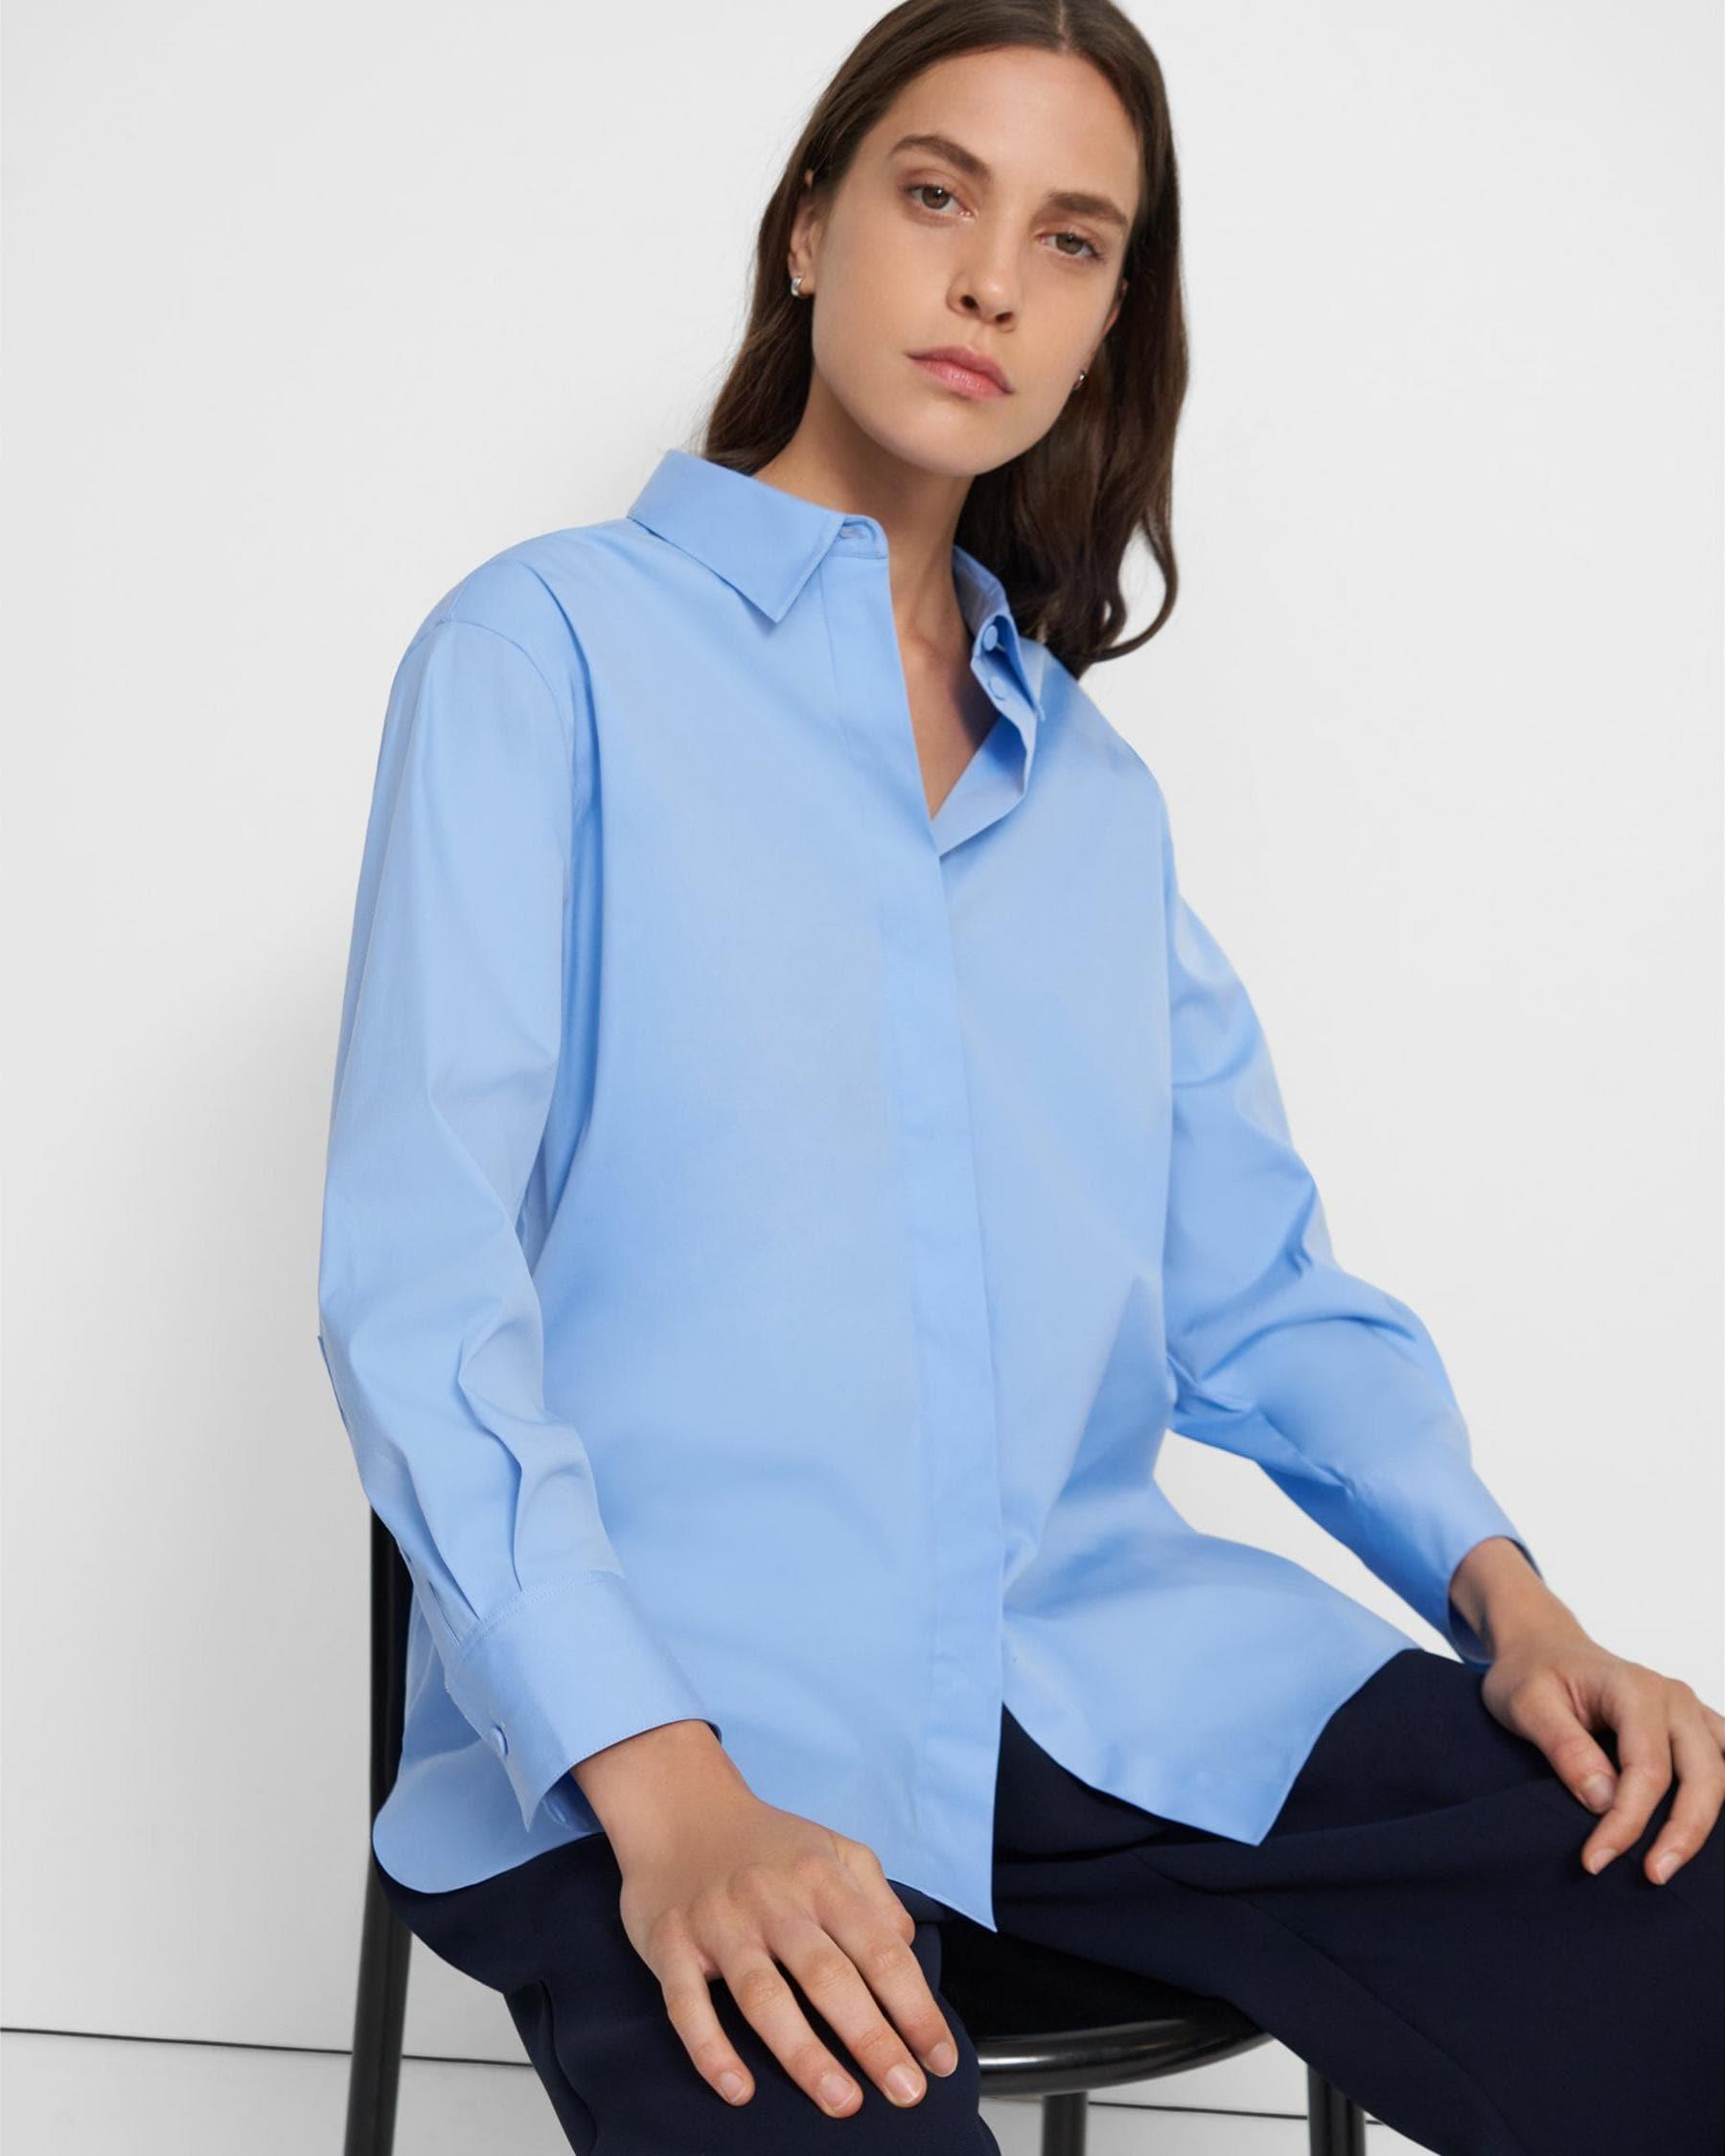 Button-Up Shirt in Good Cotton